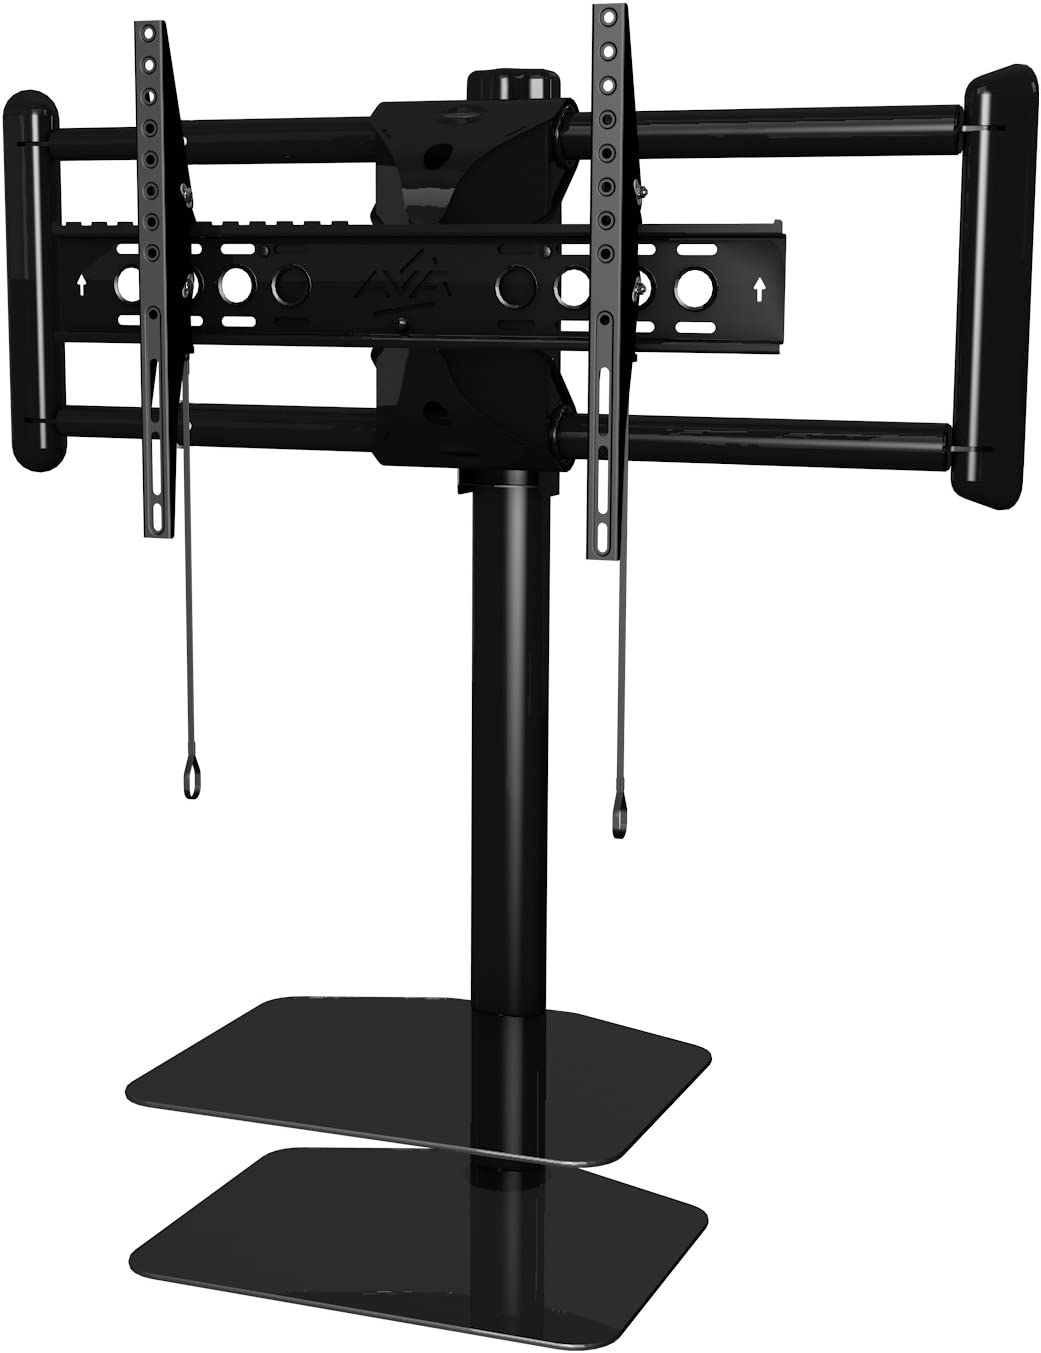 AVF ZSL5502-A Cornermount Corner TV Wall Mount All-in-One for TVs 32 – 70 inch